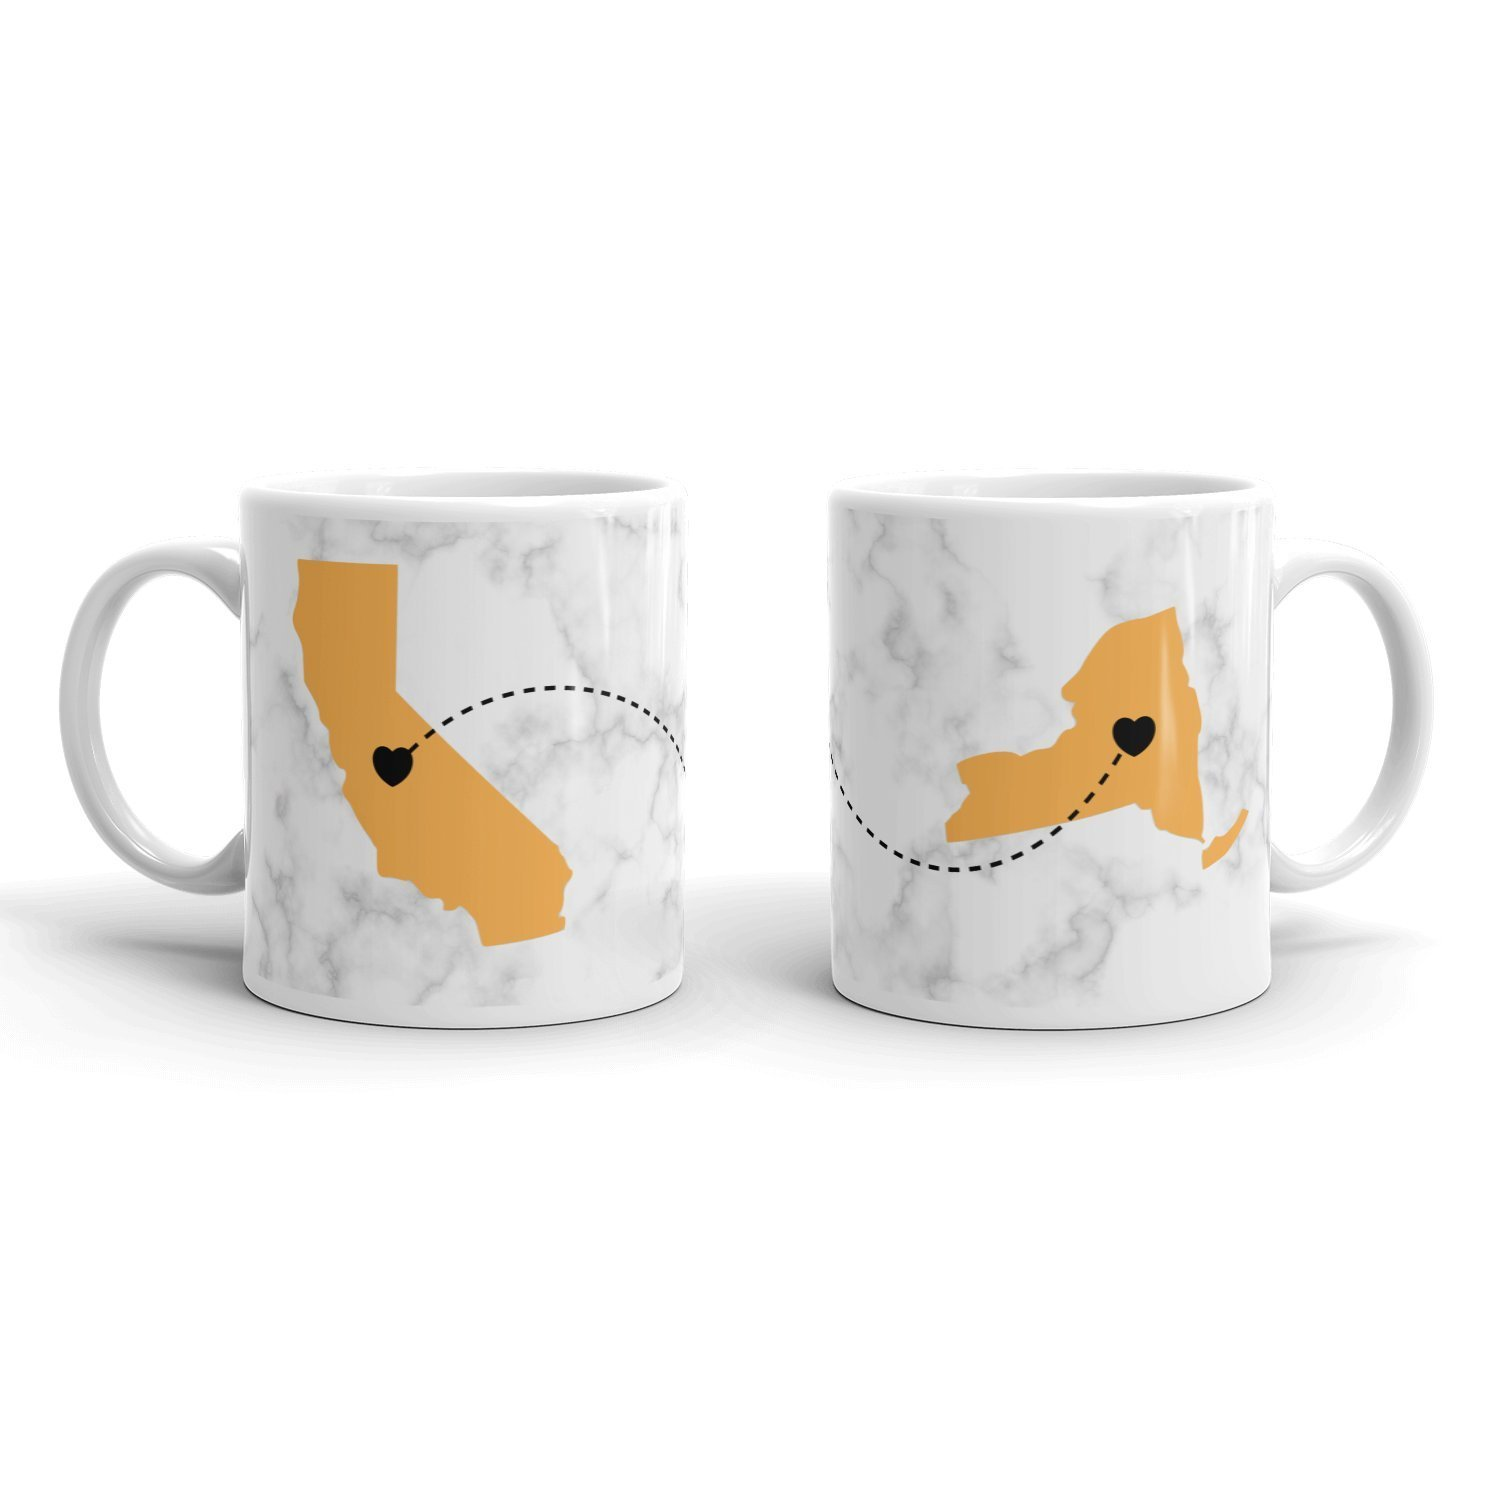 Best Friend - Long Distance Anywhere Personalized Coffee Mug | Gold on Marble - Between Any US States, Any Provinces, Any Countries | Share your love for each other with this awesome customized gift!